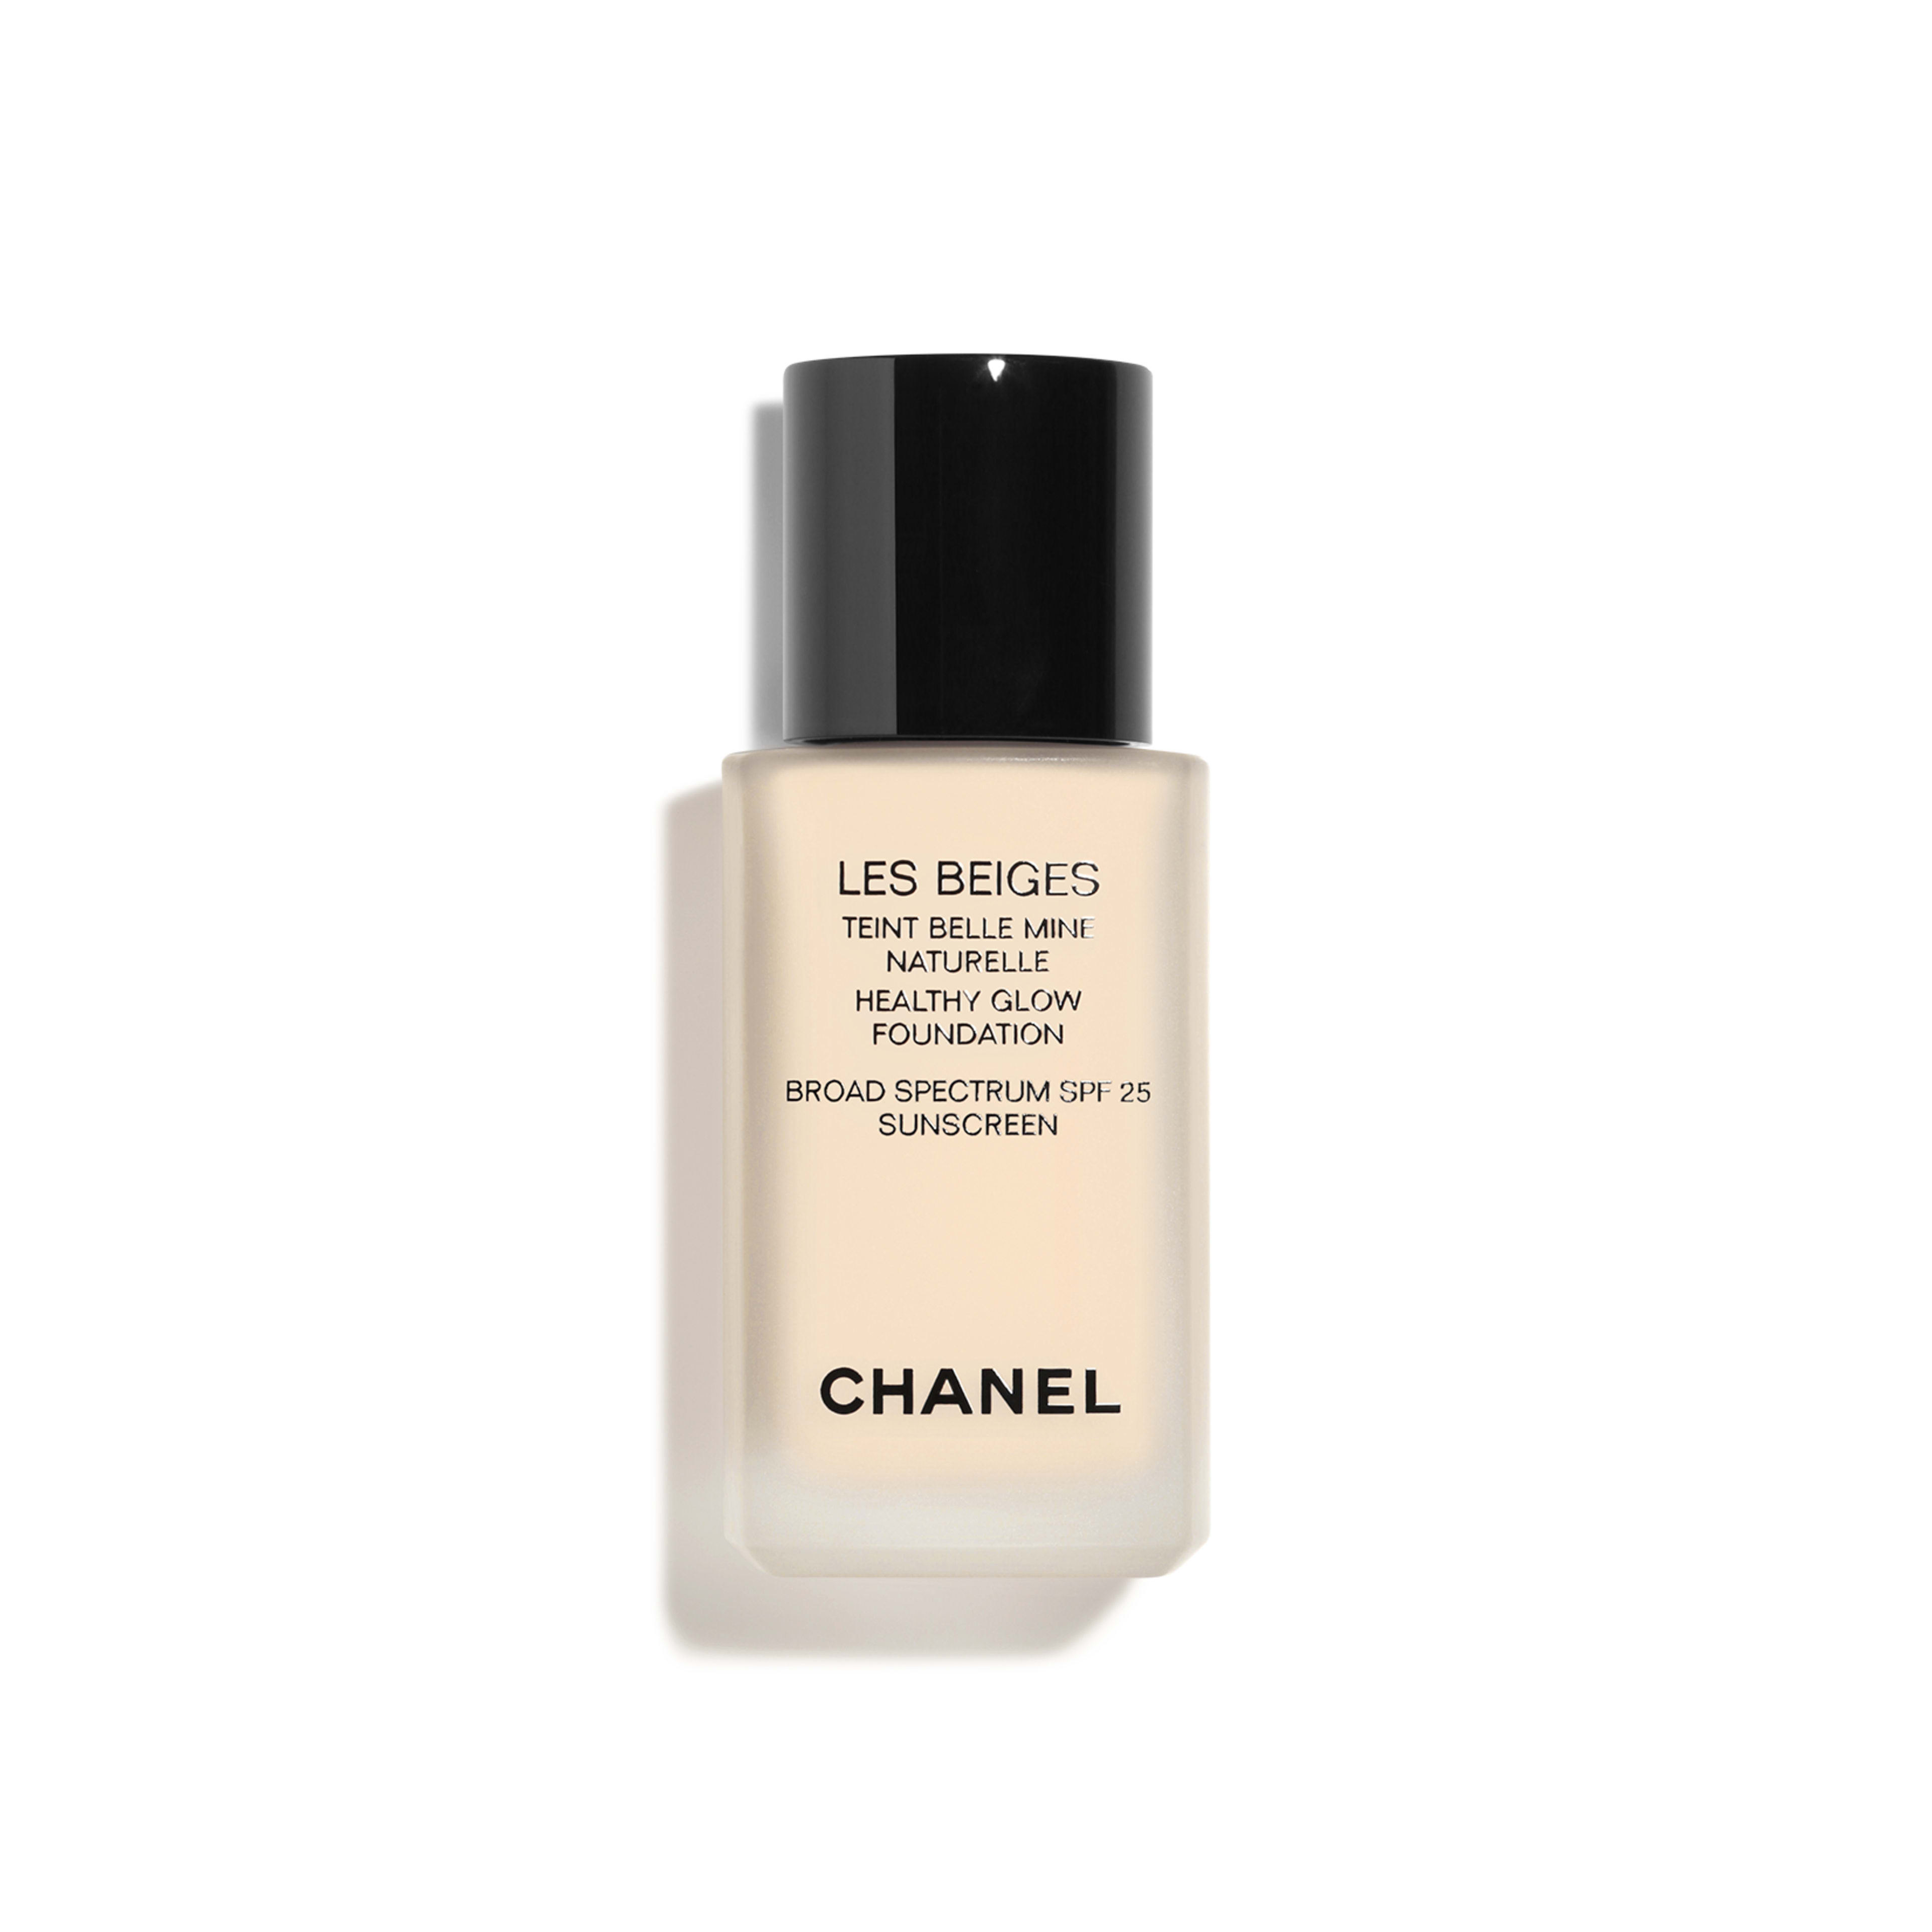 Foundation Makeup Chanel